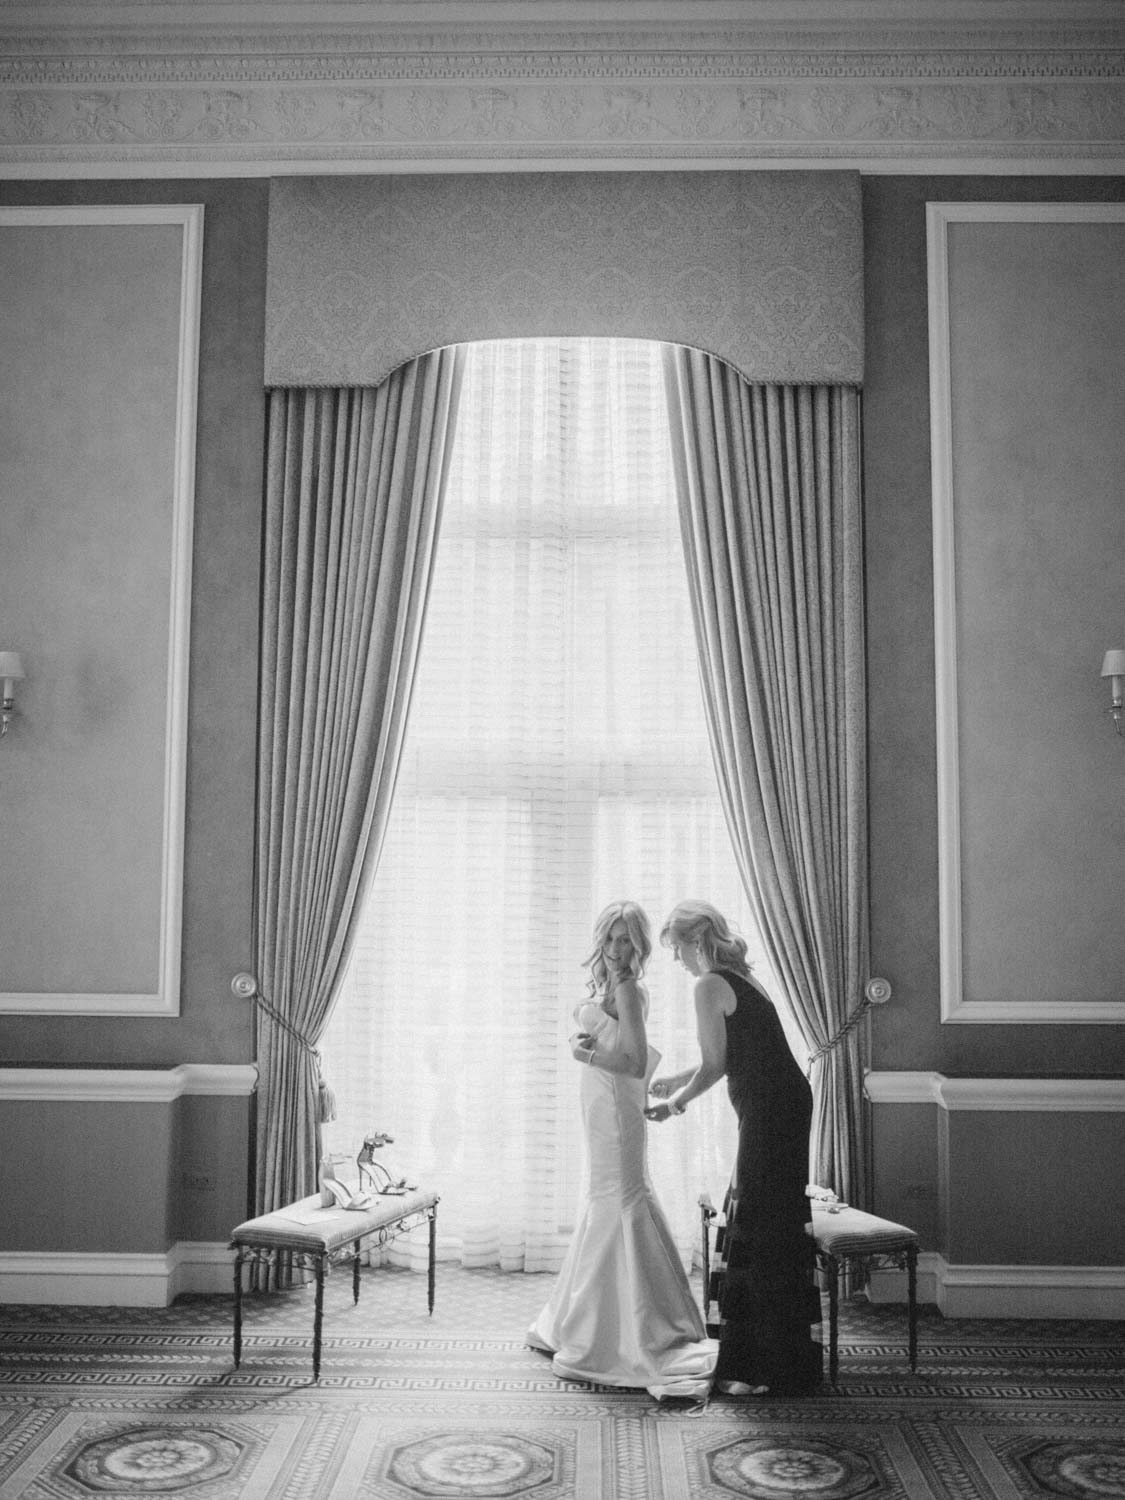 Mom helping bride with dress in front of large window, dramatic black and white portrait by Blaine Siesser - How mom can help with wedding planning - Leah E. Moss Designs